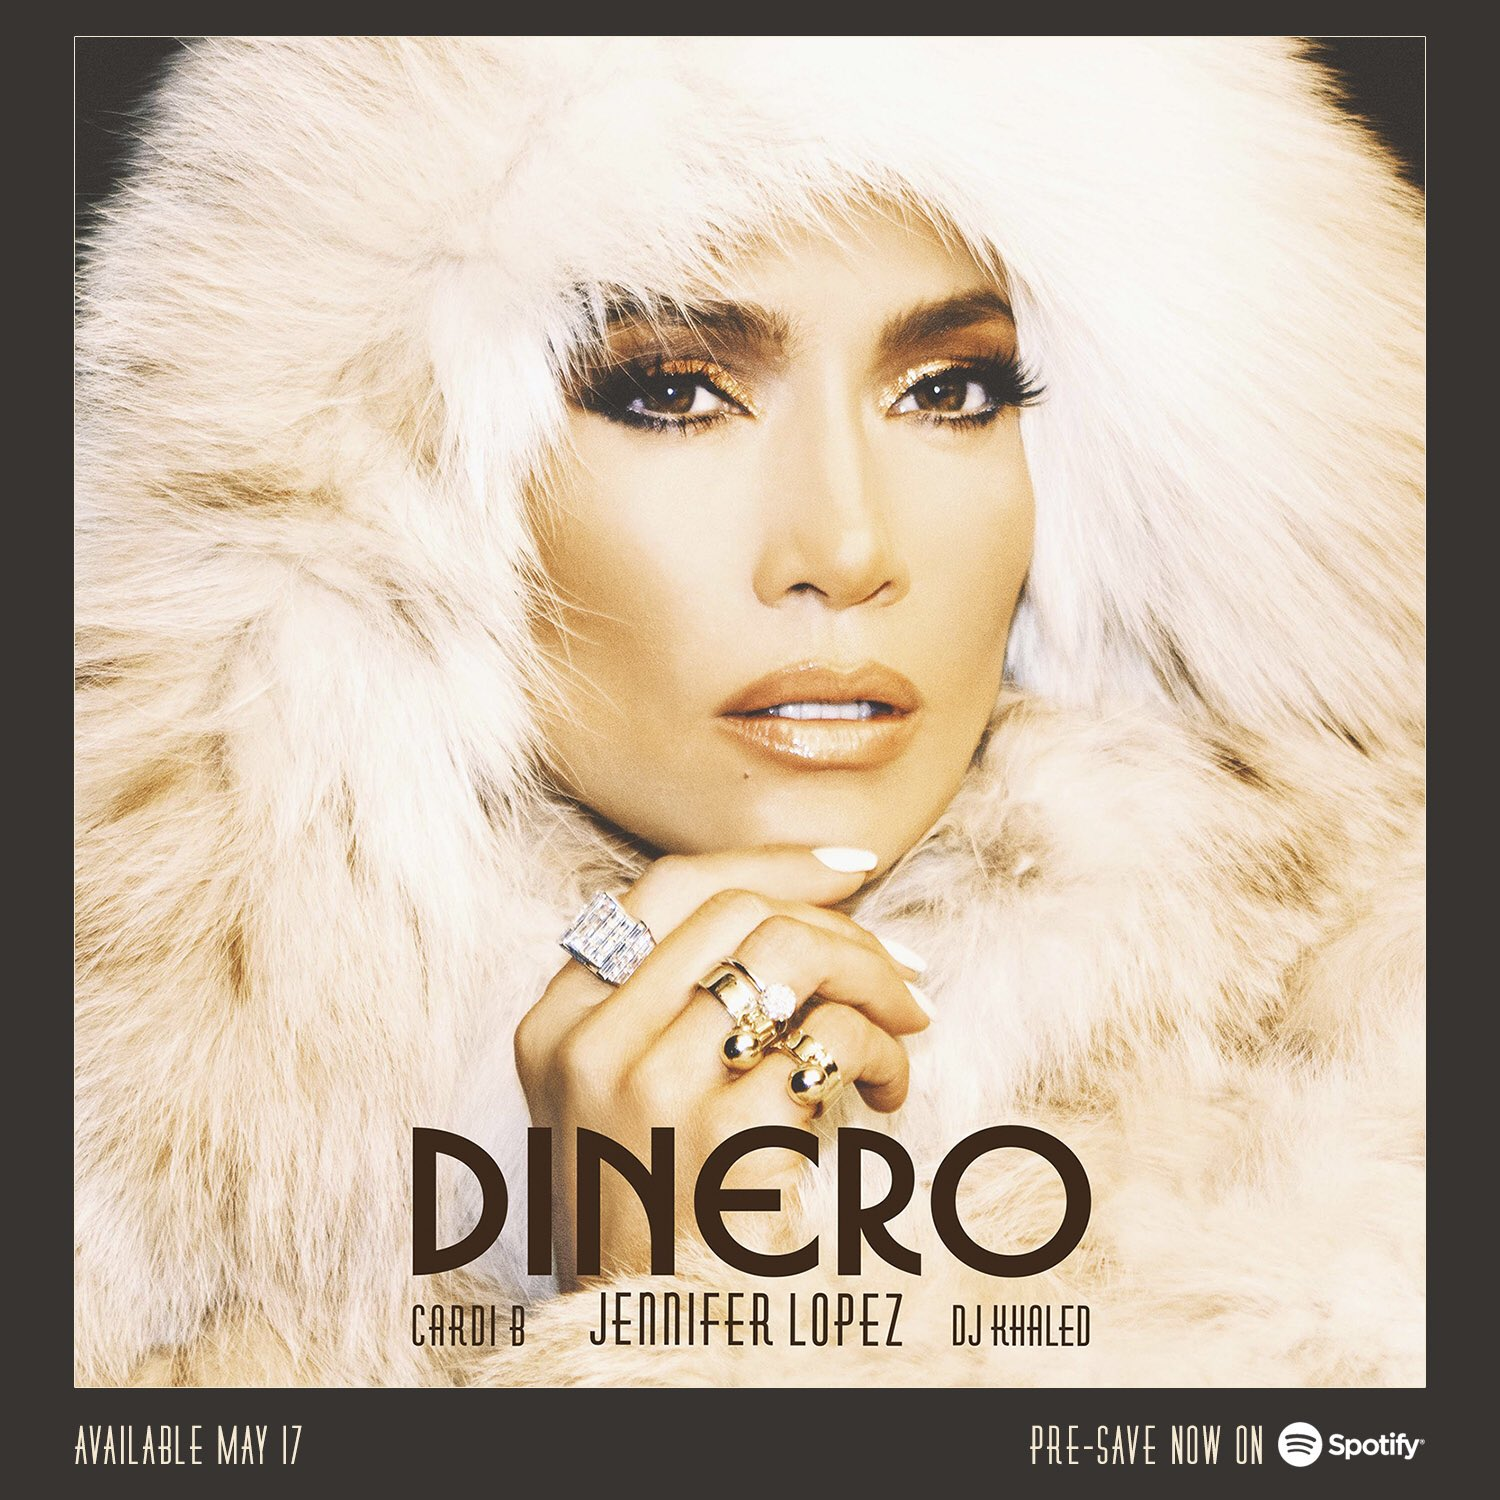 Pre-save @JLo's new track #DINERO ft. @djkhaled & @iamcardib on @Spotify now! �������������� https://t.co/azEGkKVaXm